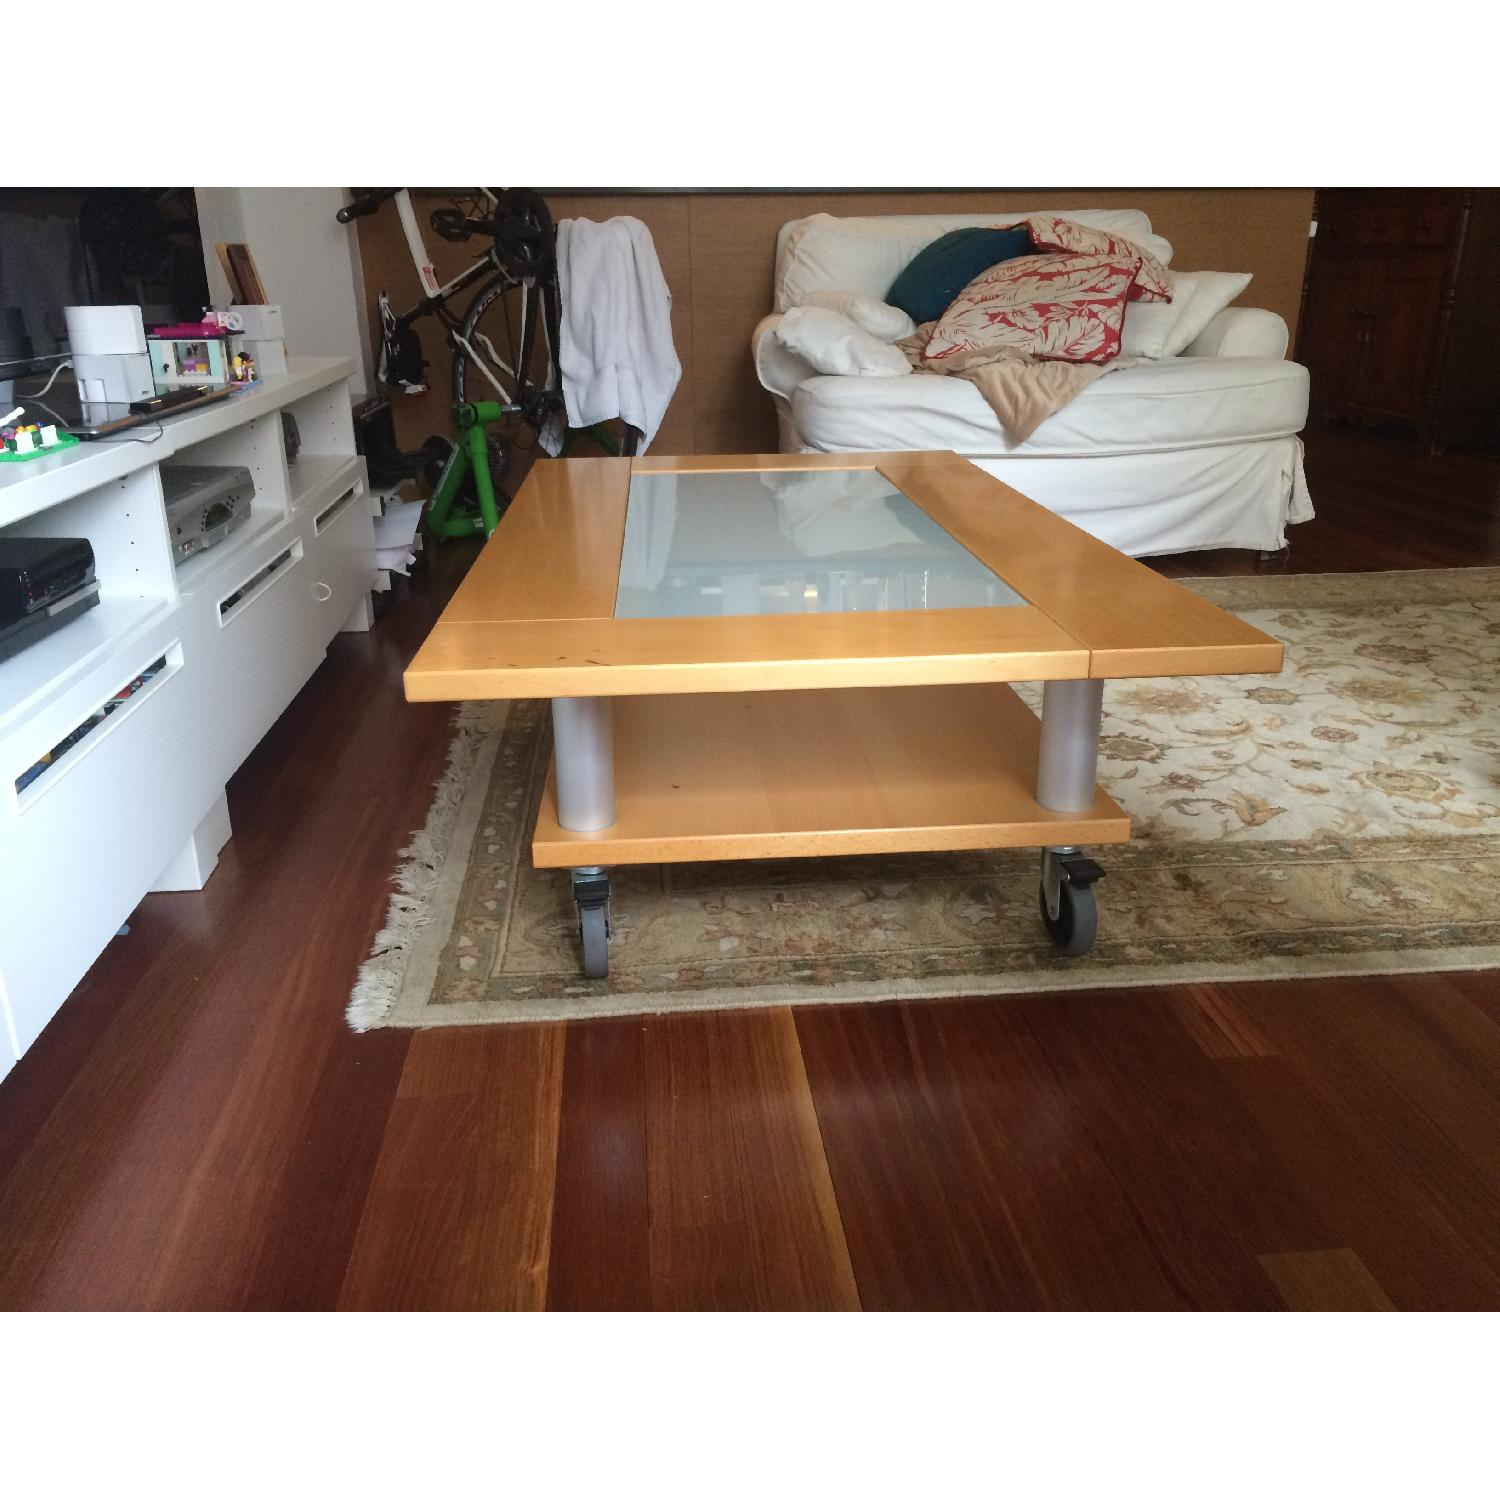 Two-Tier Coffee Table on Wheels - image-2